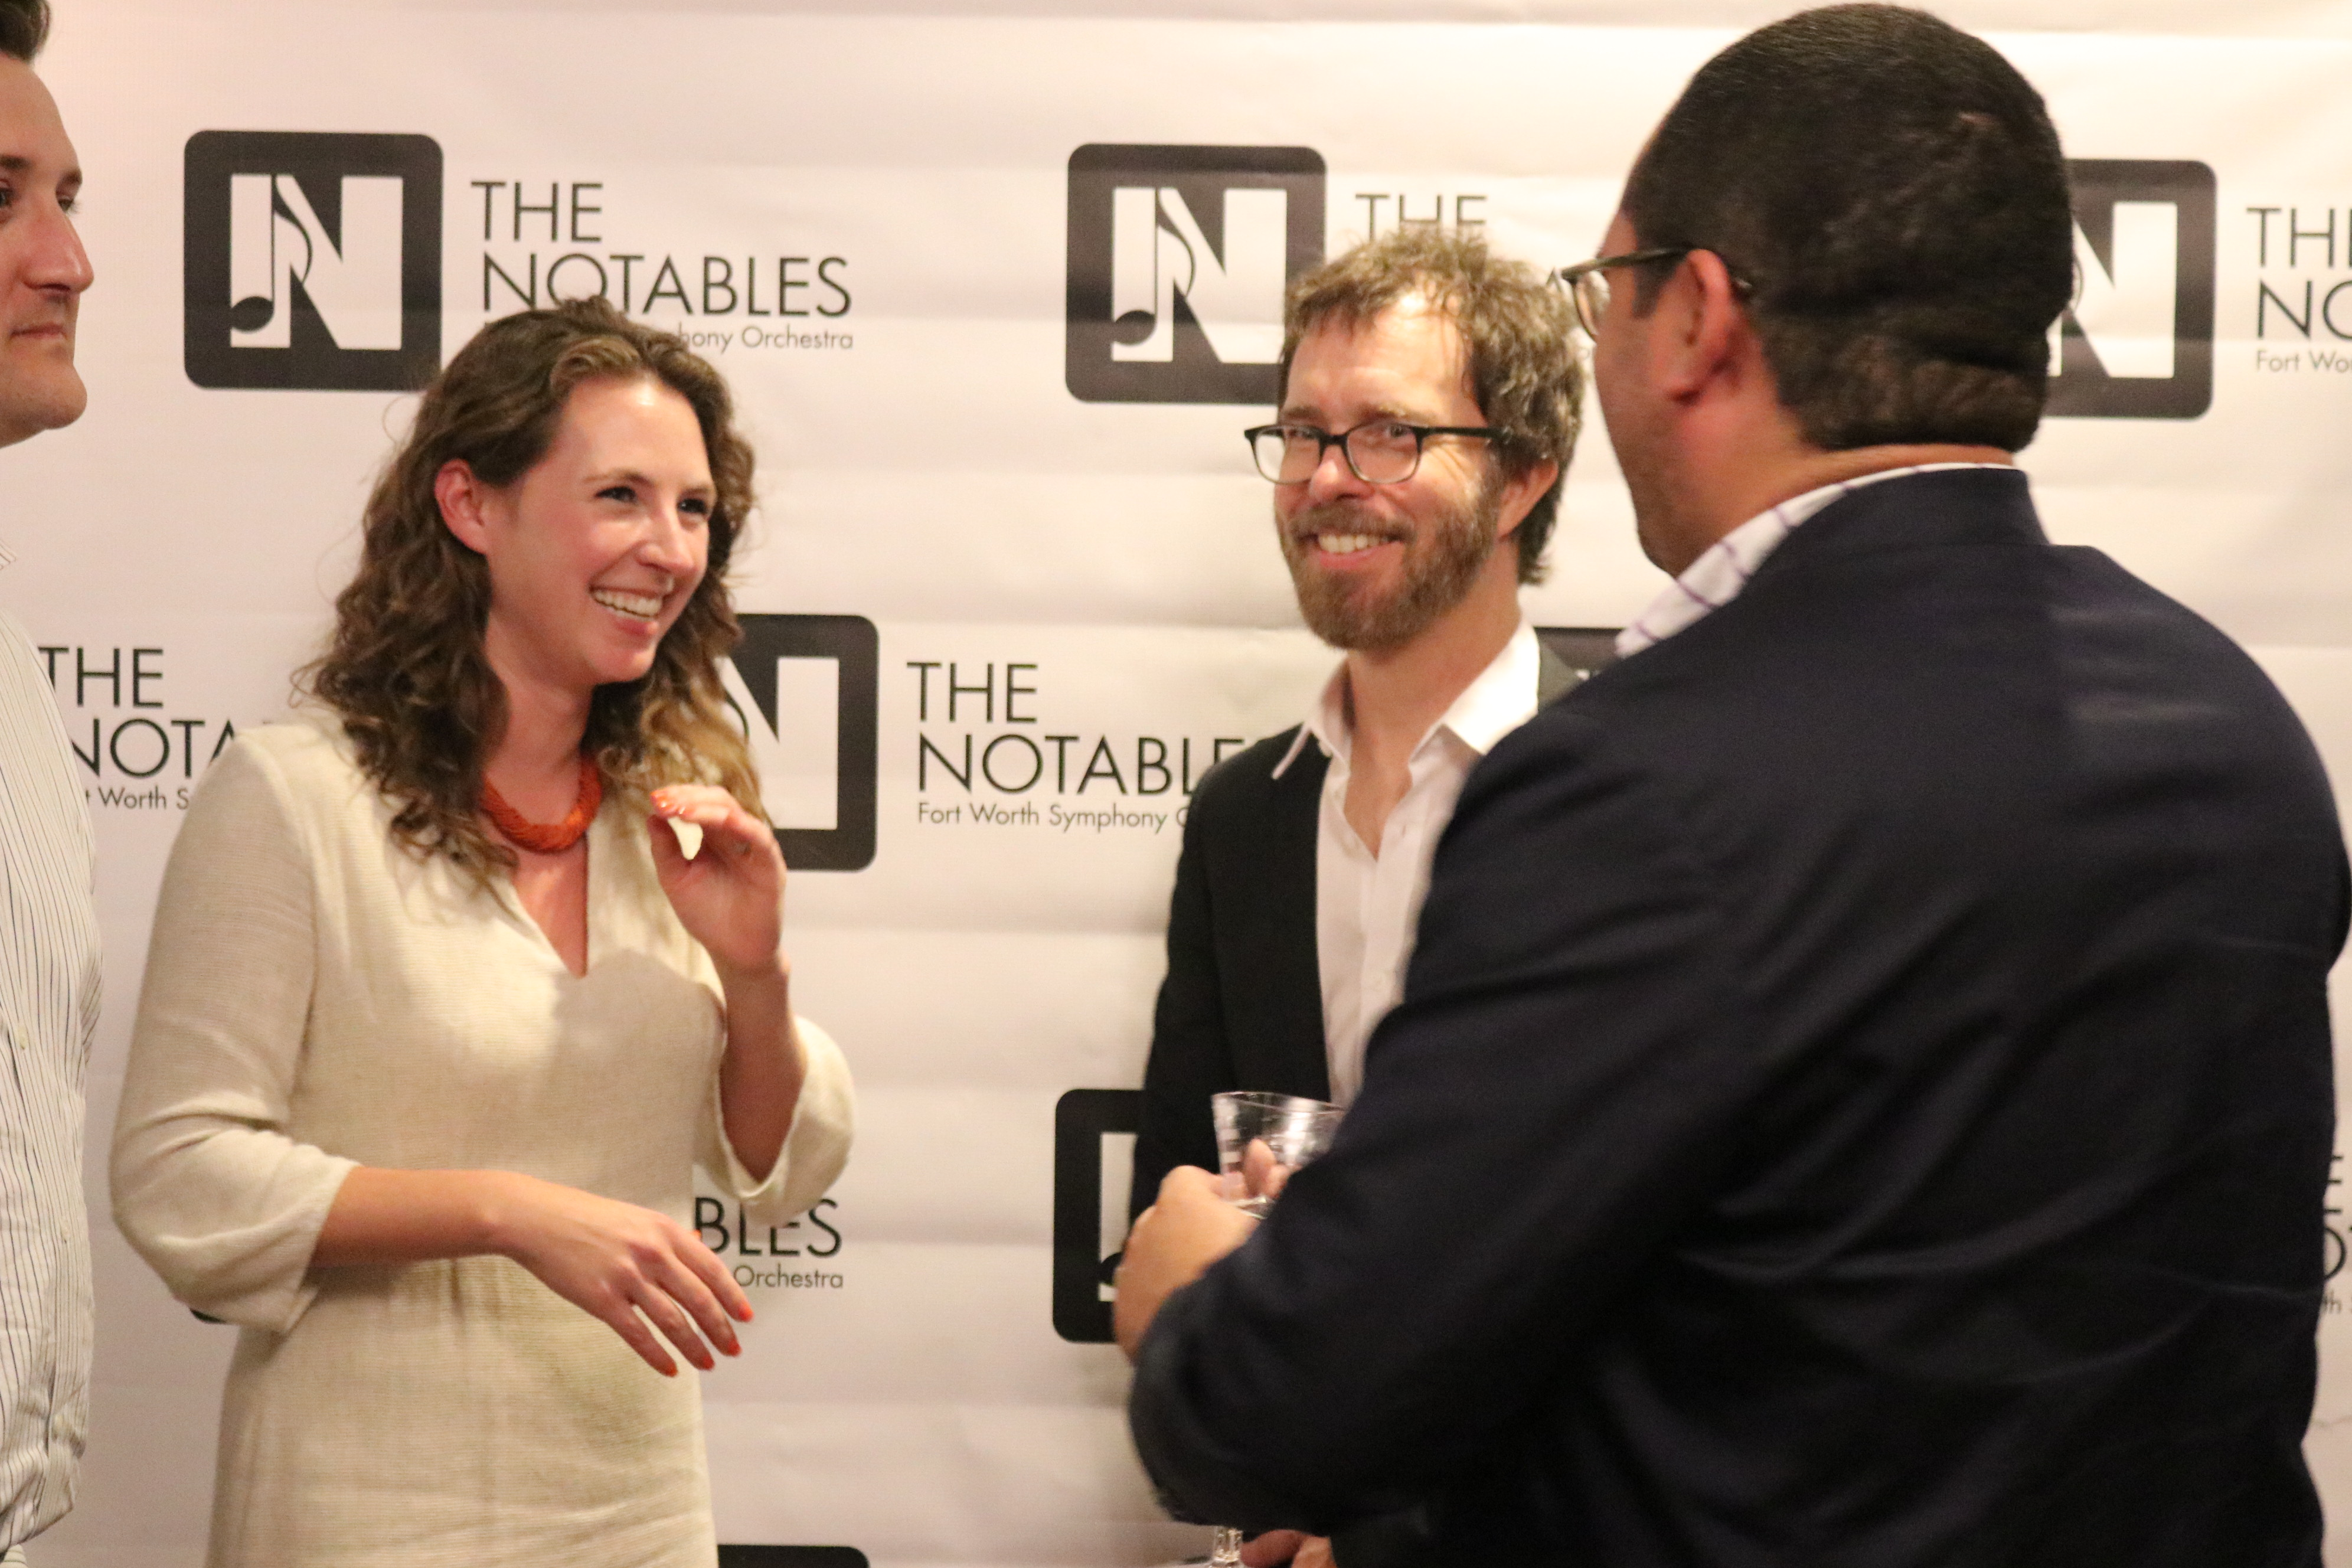 The Notables with Ben Folds